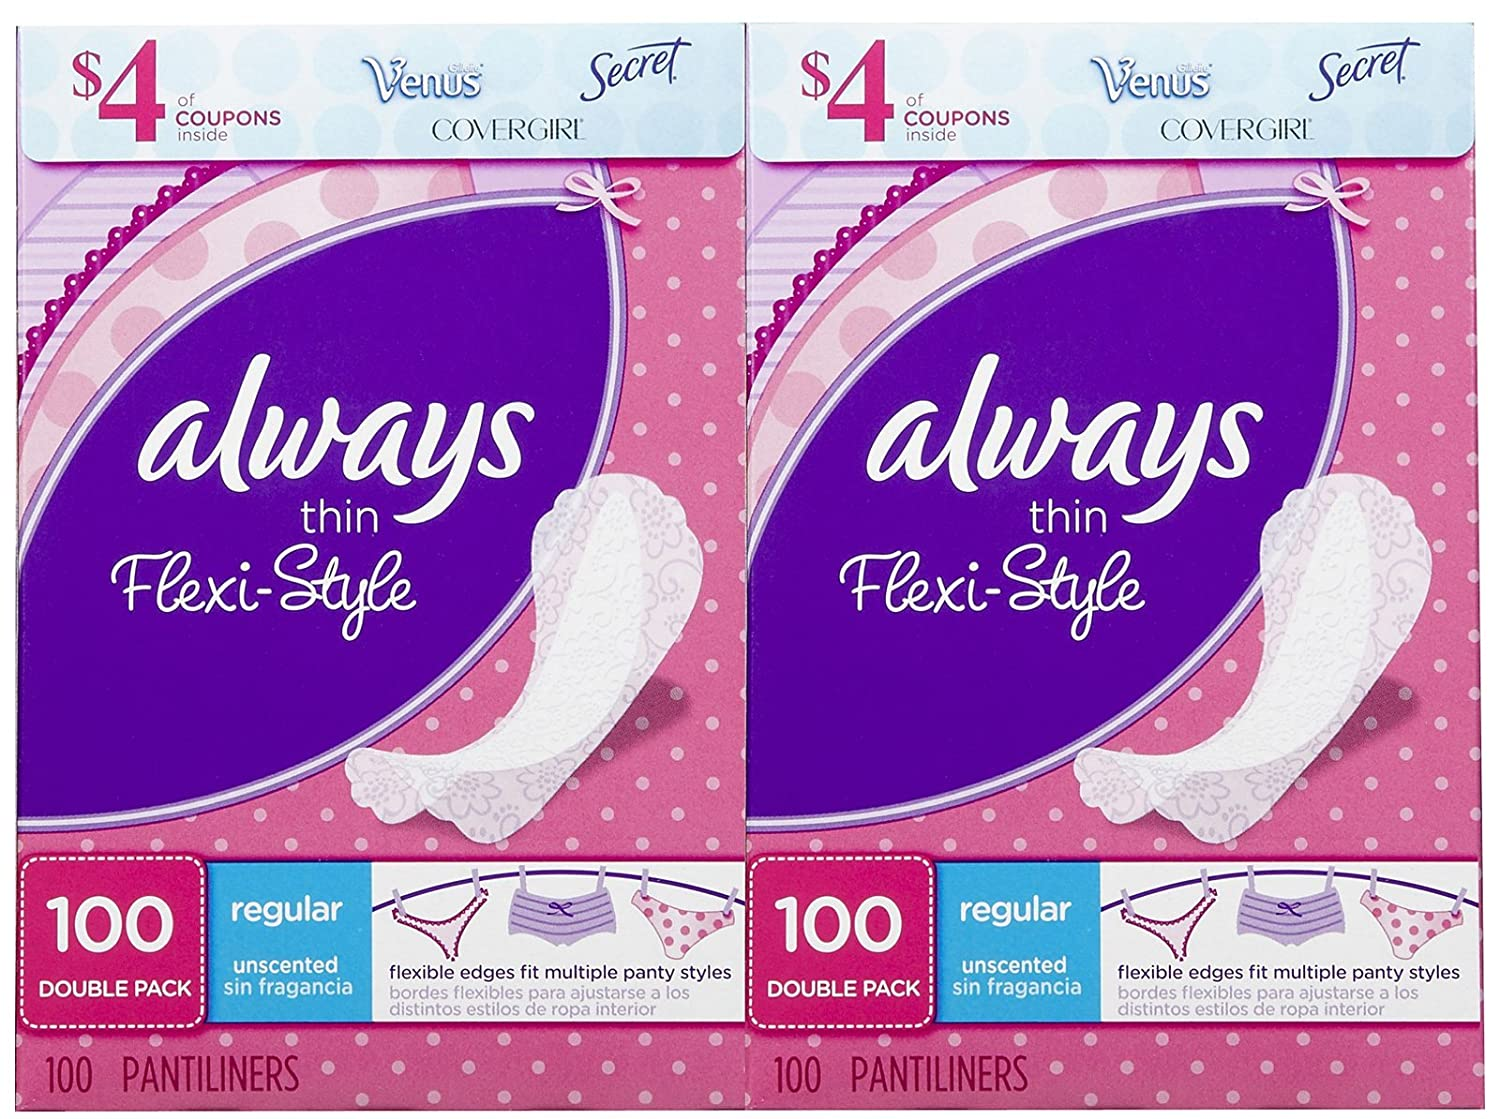 Amazon.com: Always Thin Flexi-Style Liners, Unscented - 100 ct - 2 pk: Health & Personal Care